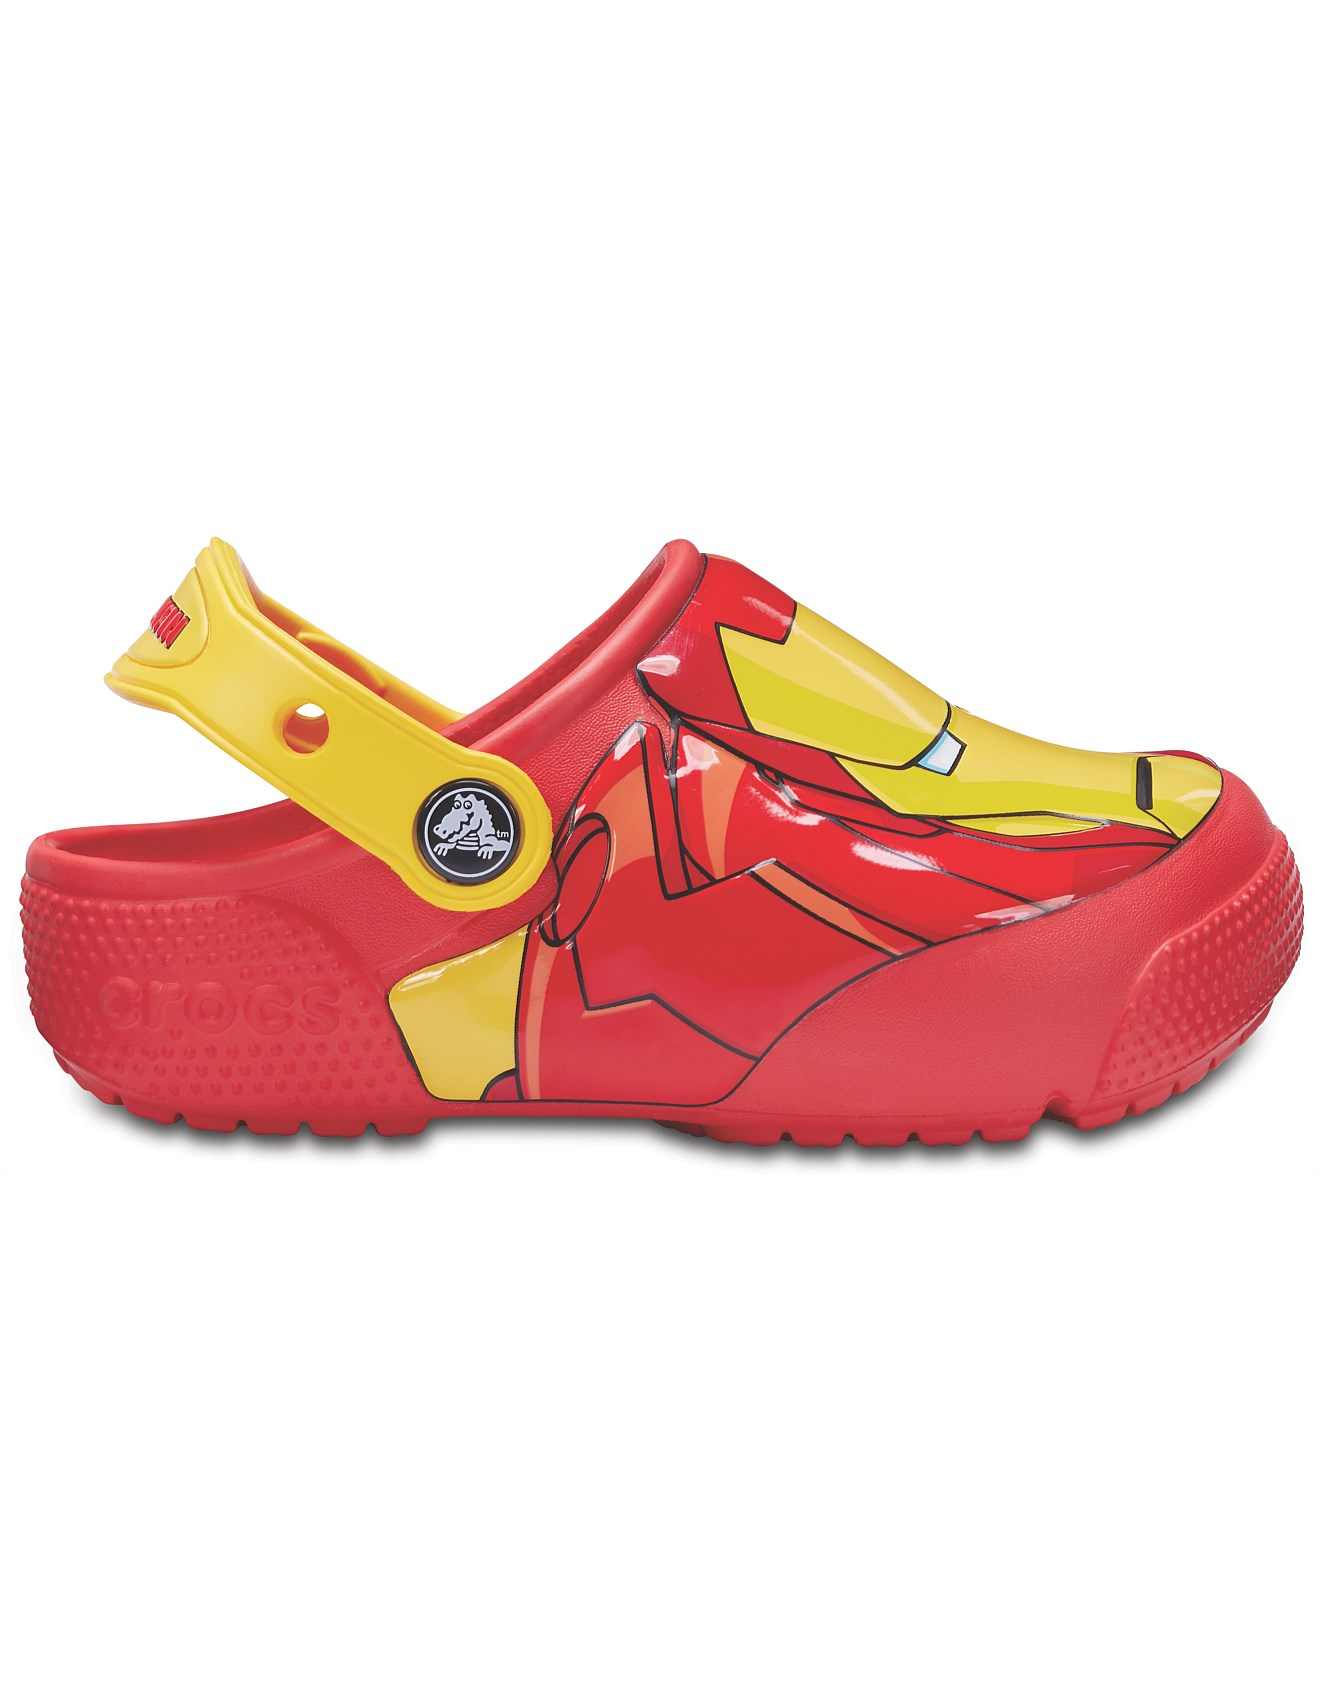 73a395cb3 DISNEY Iron Man Lights Clog